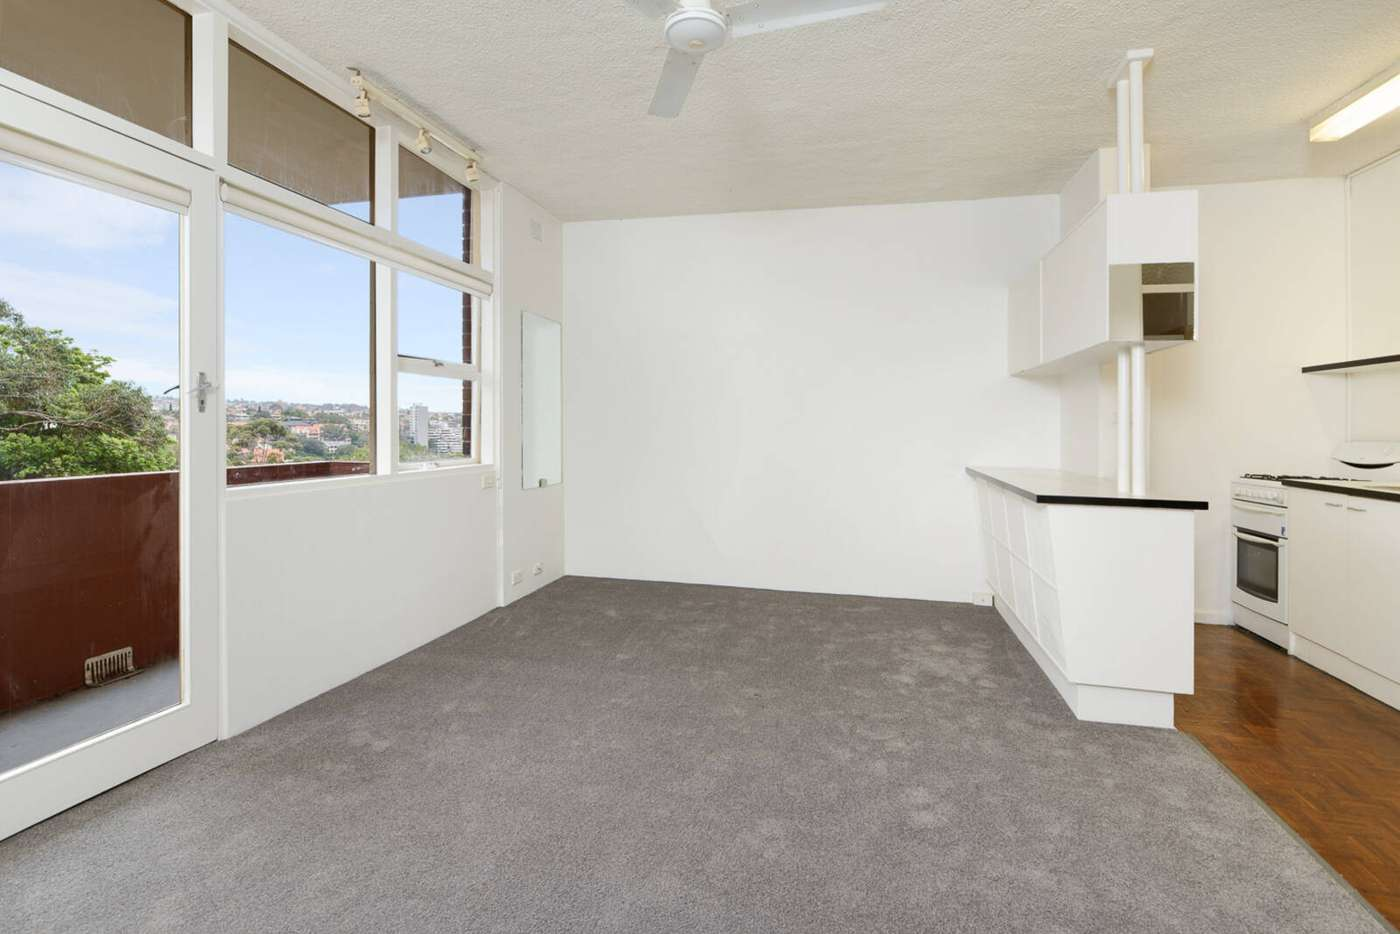 Main view of Homely studio listing, 26/59 Whaling Road, North Sydney NSW 2060